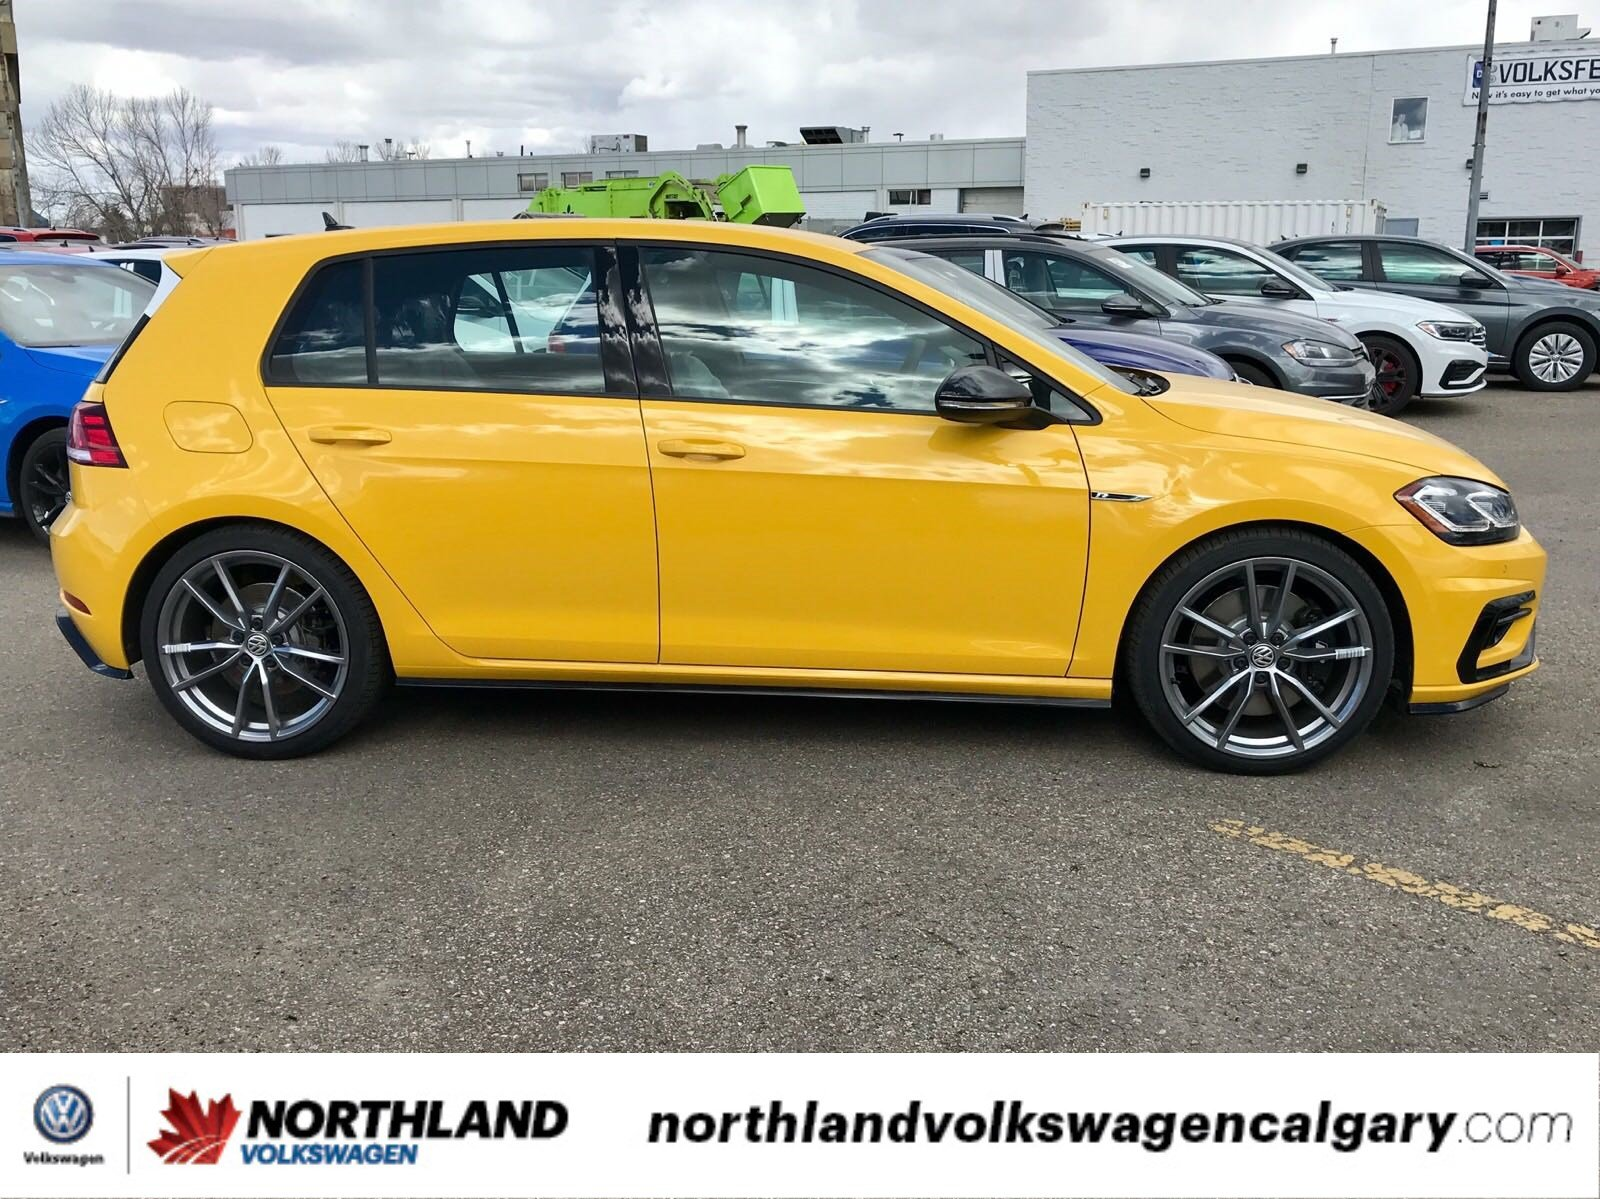 L132, 9150 - GINSTER YELLOW, GINSTERGELB (GOLF R)-0.jpg